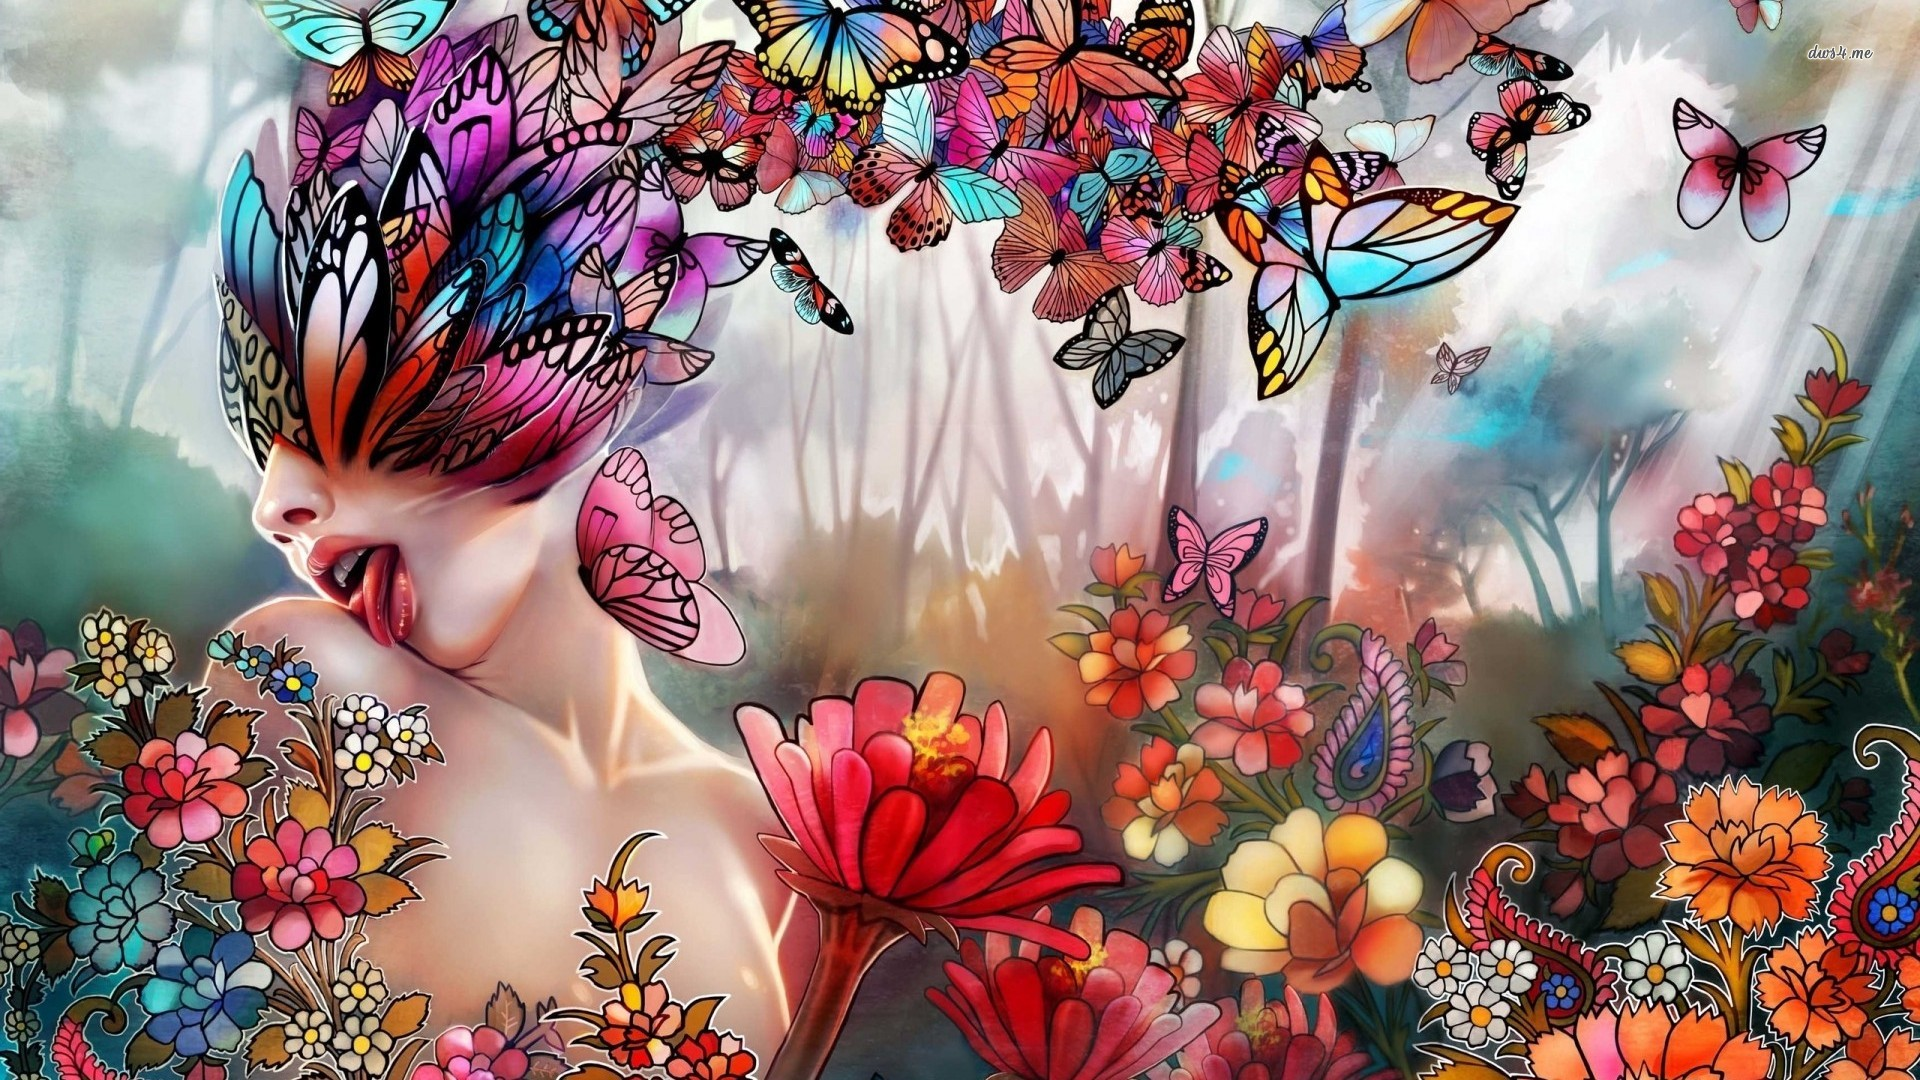 15989-butterfly-woman-1920x1080-artistic-wallpaper.jpg